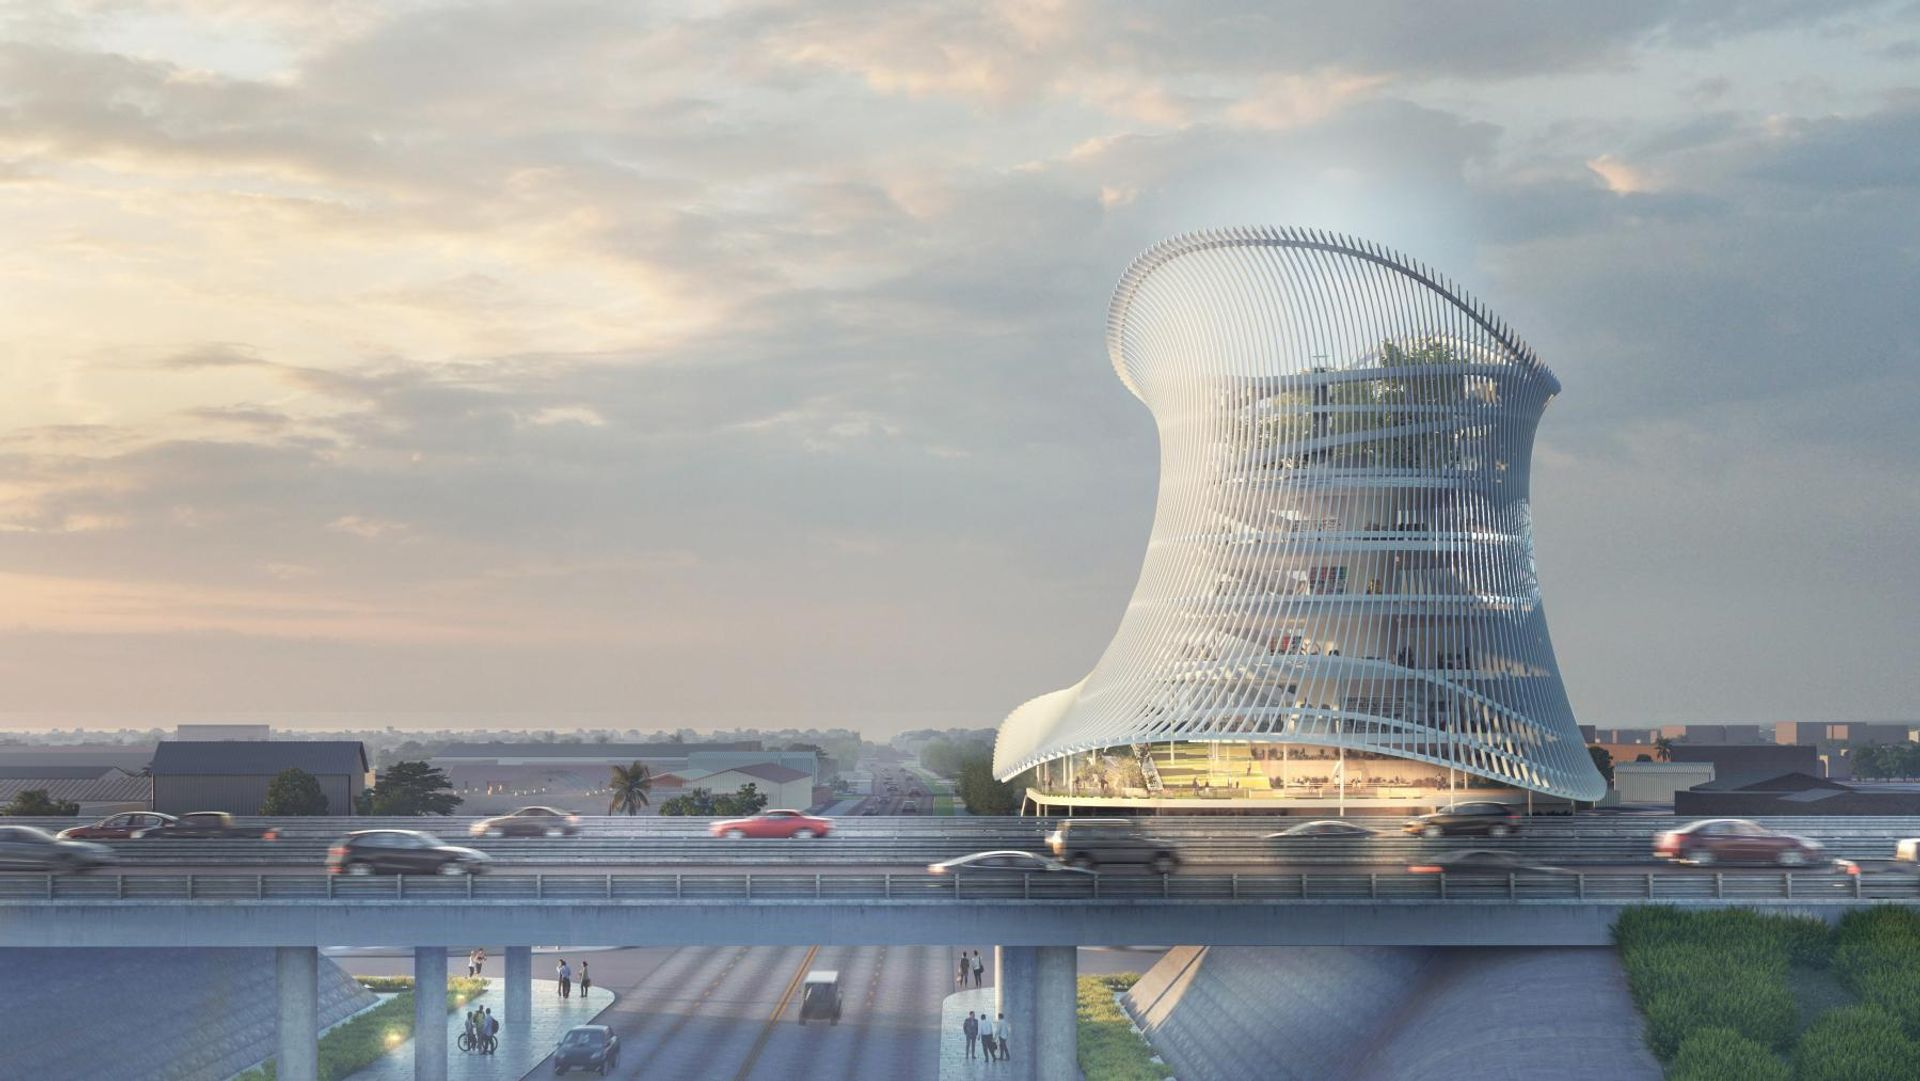 Architect's rendering of the Pulse Museum exterior Image Coldefy & Associés with RDAI/onePULSE Foundation